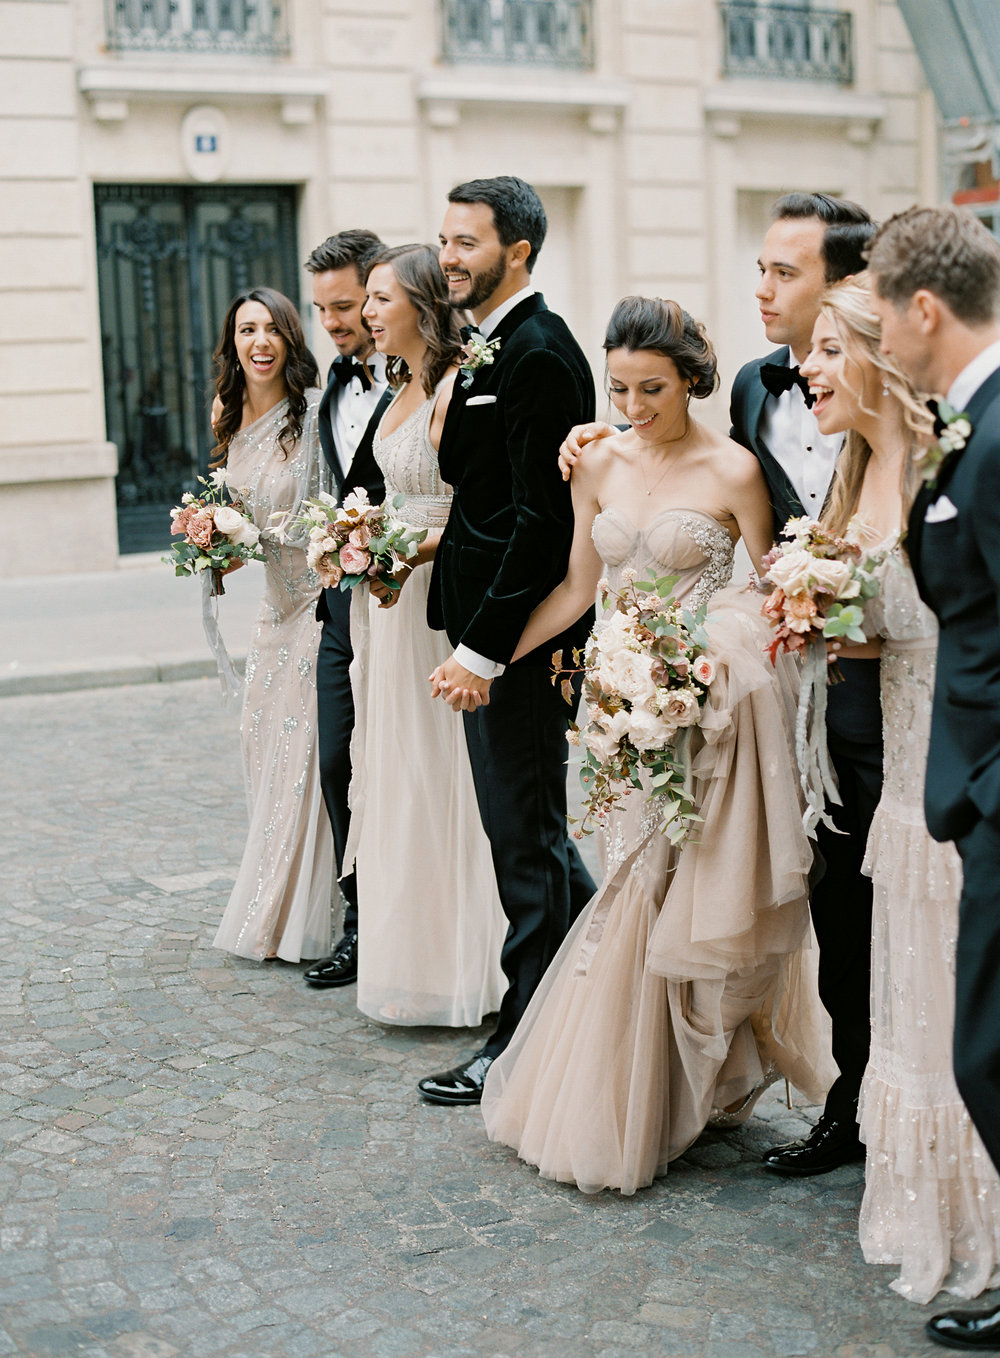 Ellen and Jeremy Wedding-Paris France-Carrie King Photographer-164.jpg